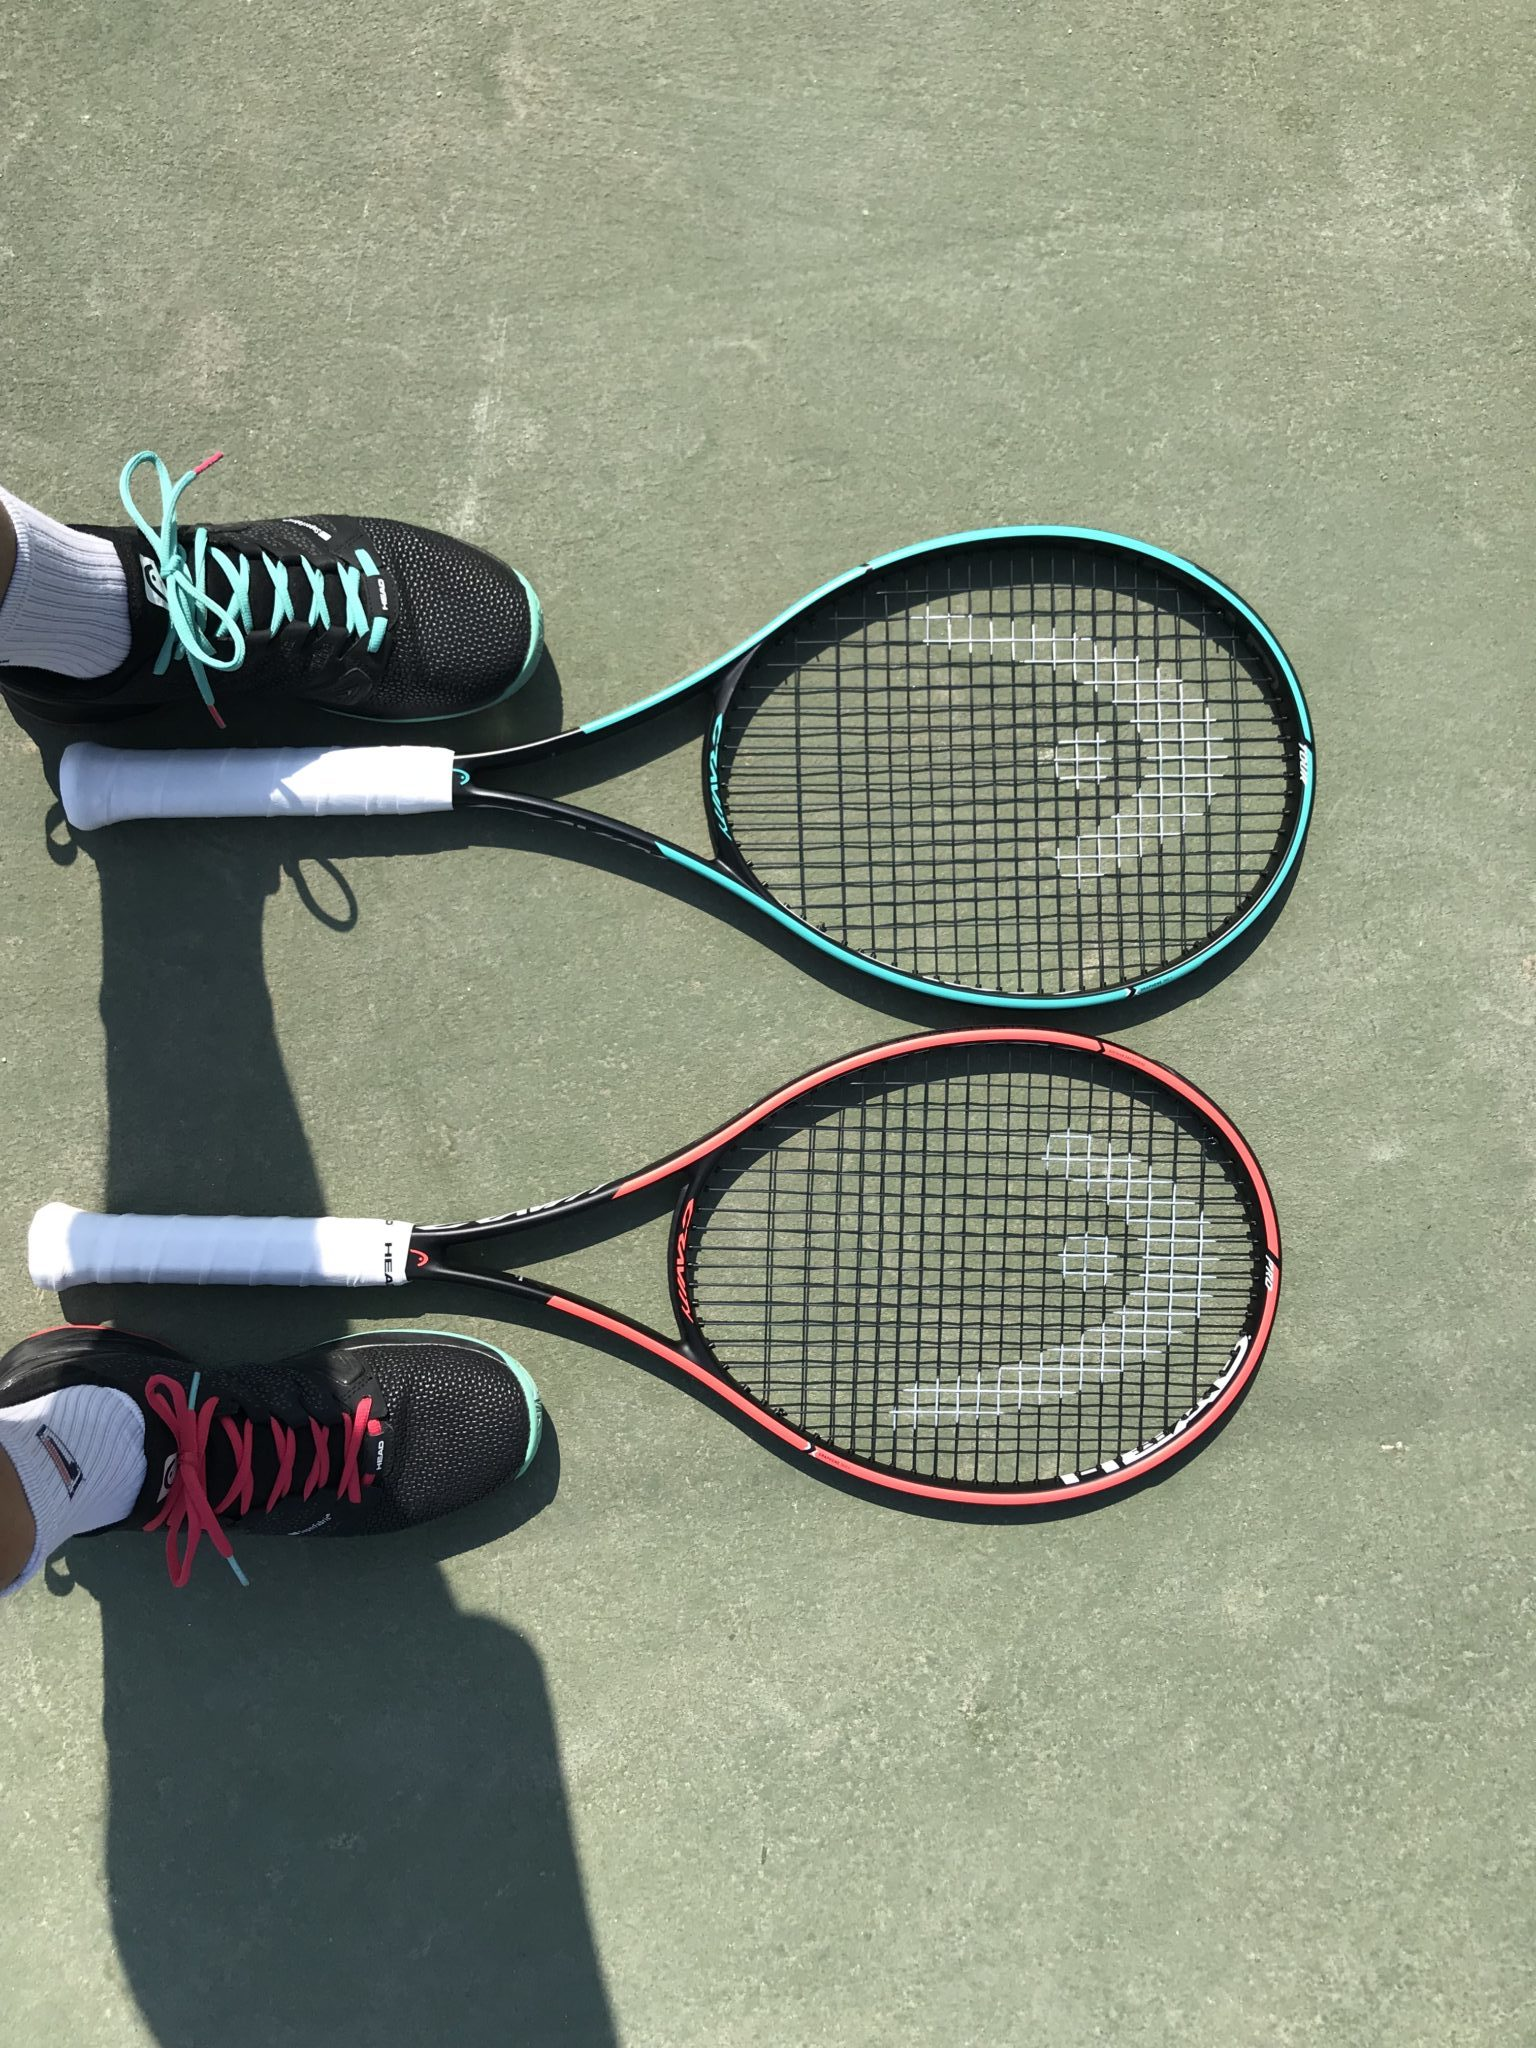 Head Gravity Racquet Review Test Of Graphene 360 Gravity Racquets